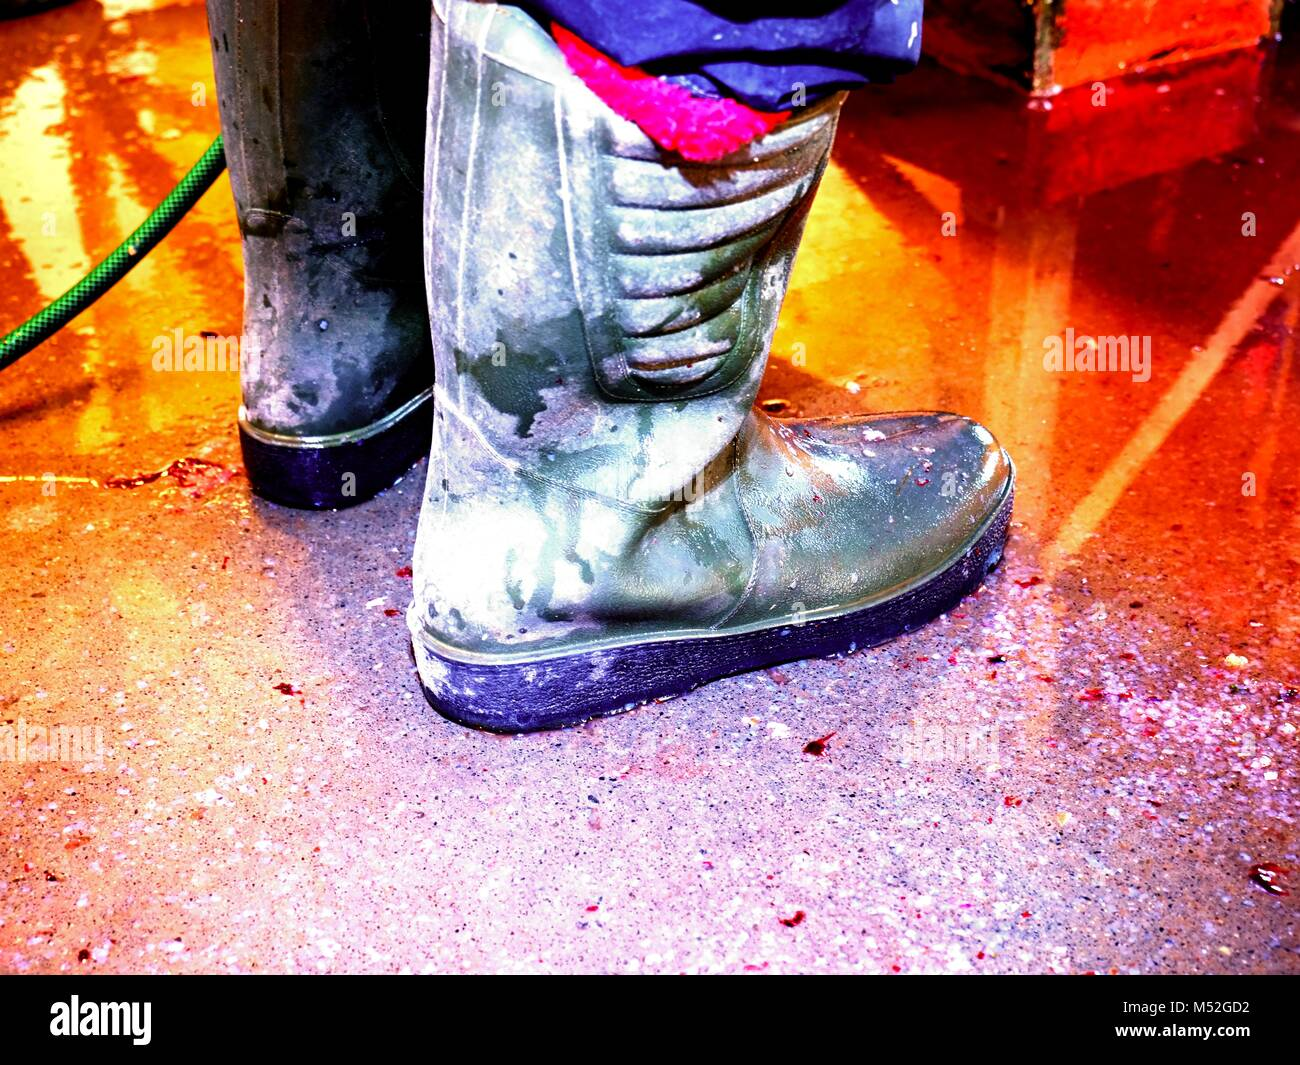 Dirty rubber boots on bloddy water floor. Fish slaughterhouse or butchery . Marble floor and ground pressure washing Stock Photo